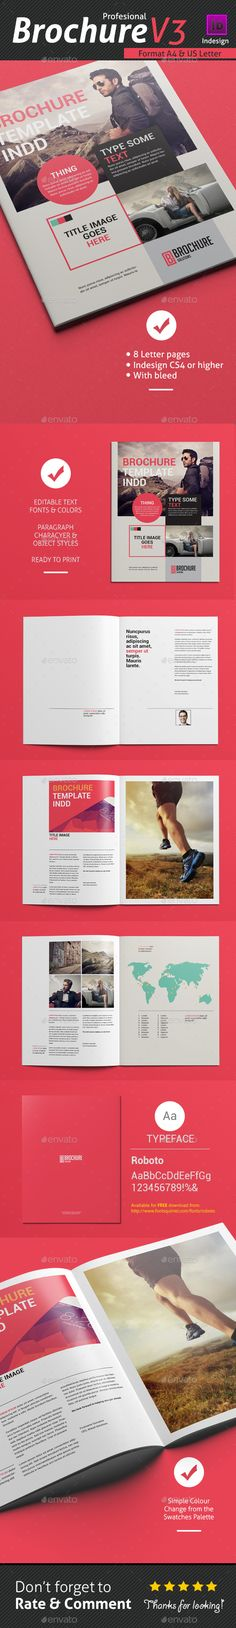 Free soft and clean square indesign brochure template for Indesign templates brochure